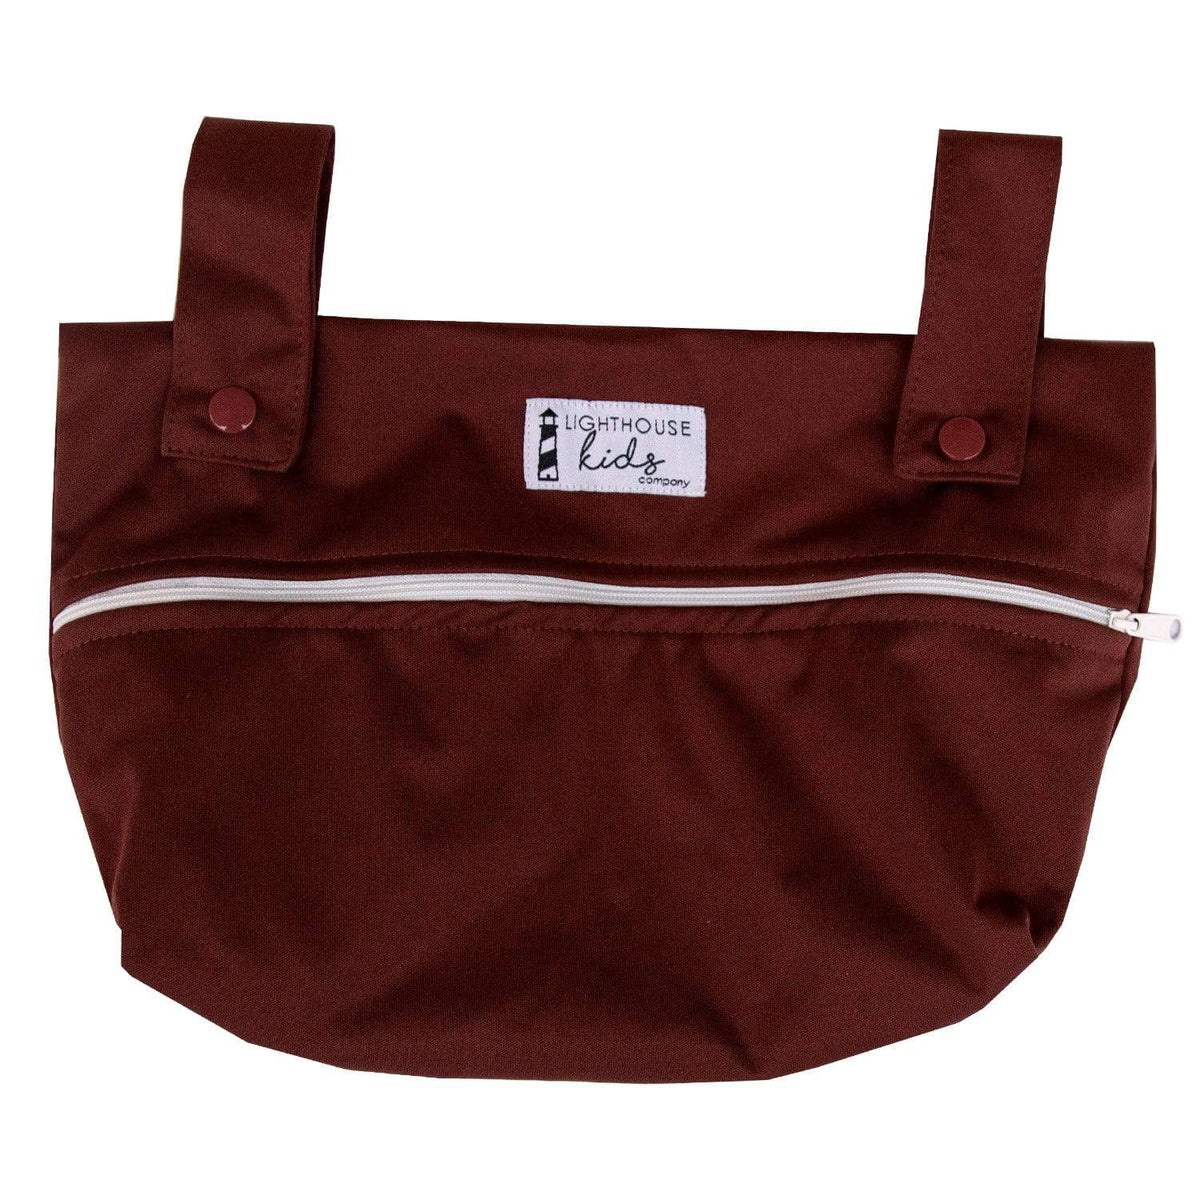 Lighthouse Kid's Company Small Wet Bag - Cocoa